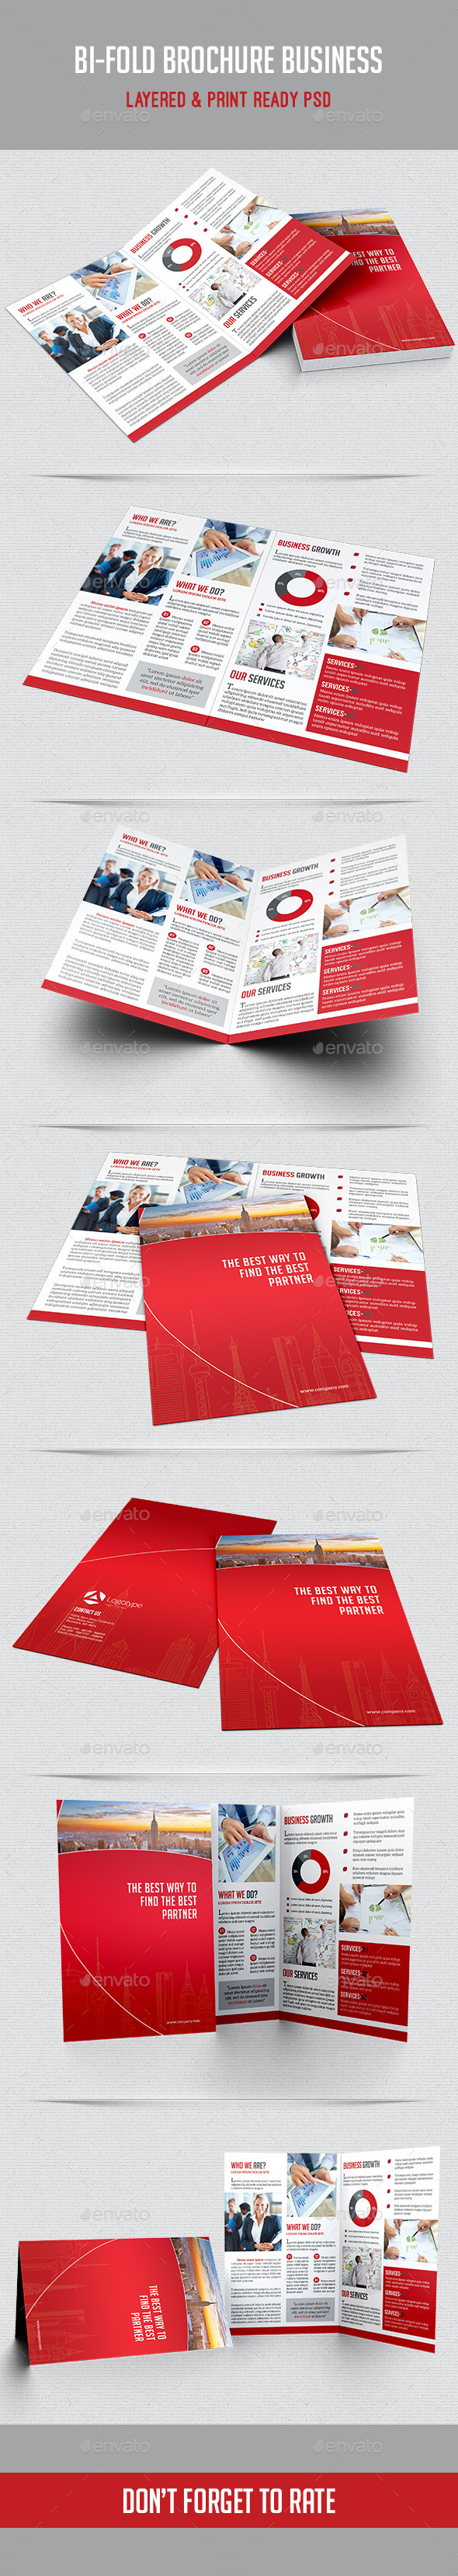 GraphicRiver Bi-fold Brochure Business 10317044